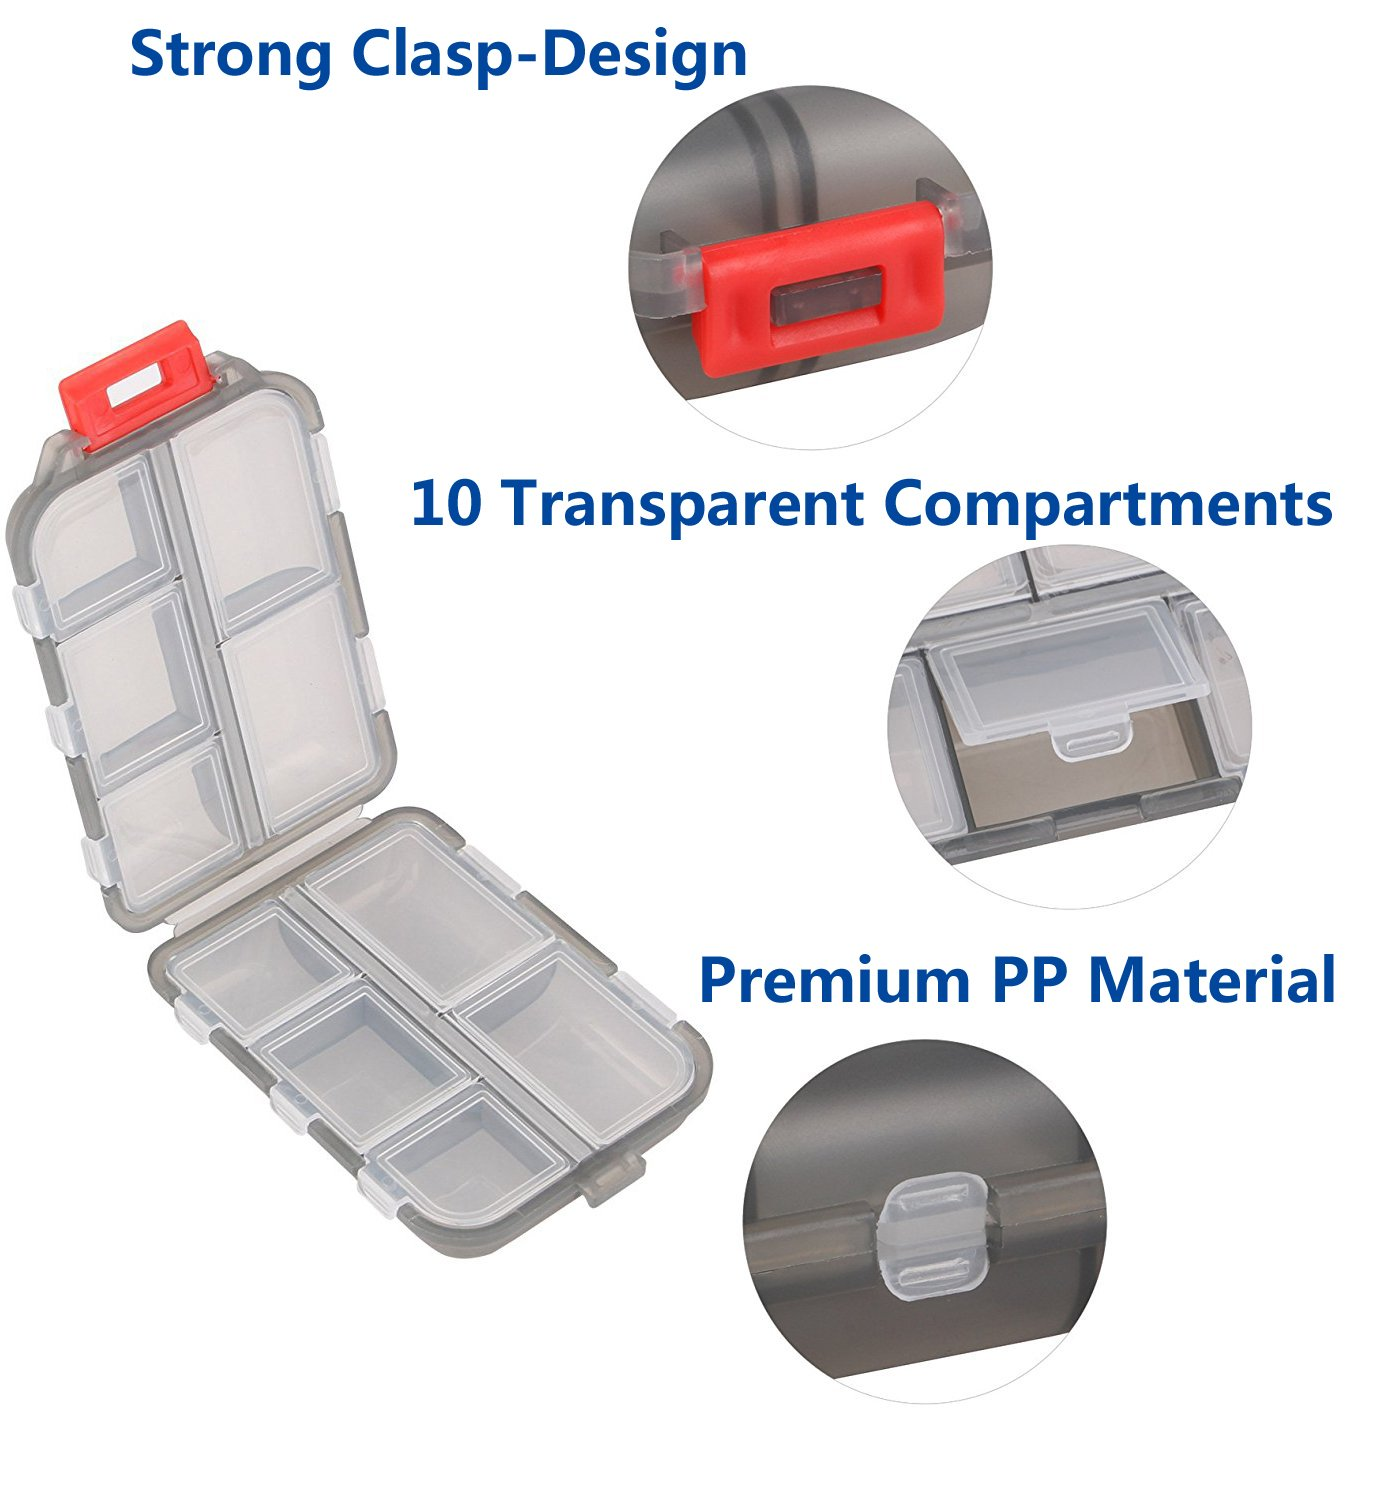 Yeeho Pill Case (3 Pack) - Portable Small Supplements Tablet Container Box with 10 Compartments - Medicine Capsule Vitamin Fold Flip Organizer Dispenser Holder Storage for Travel Trip Pocket Purse by YEEHO (Image #6)